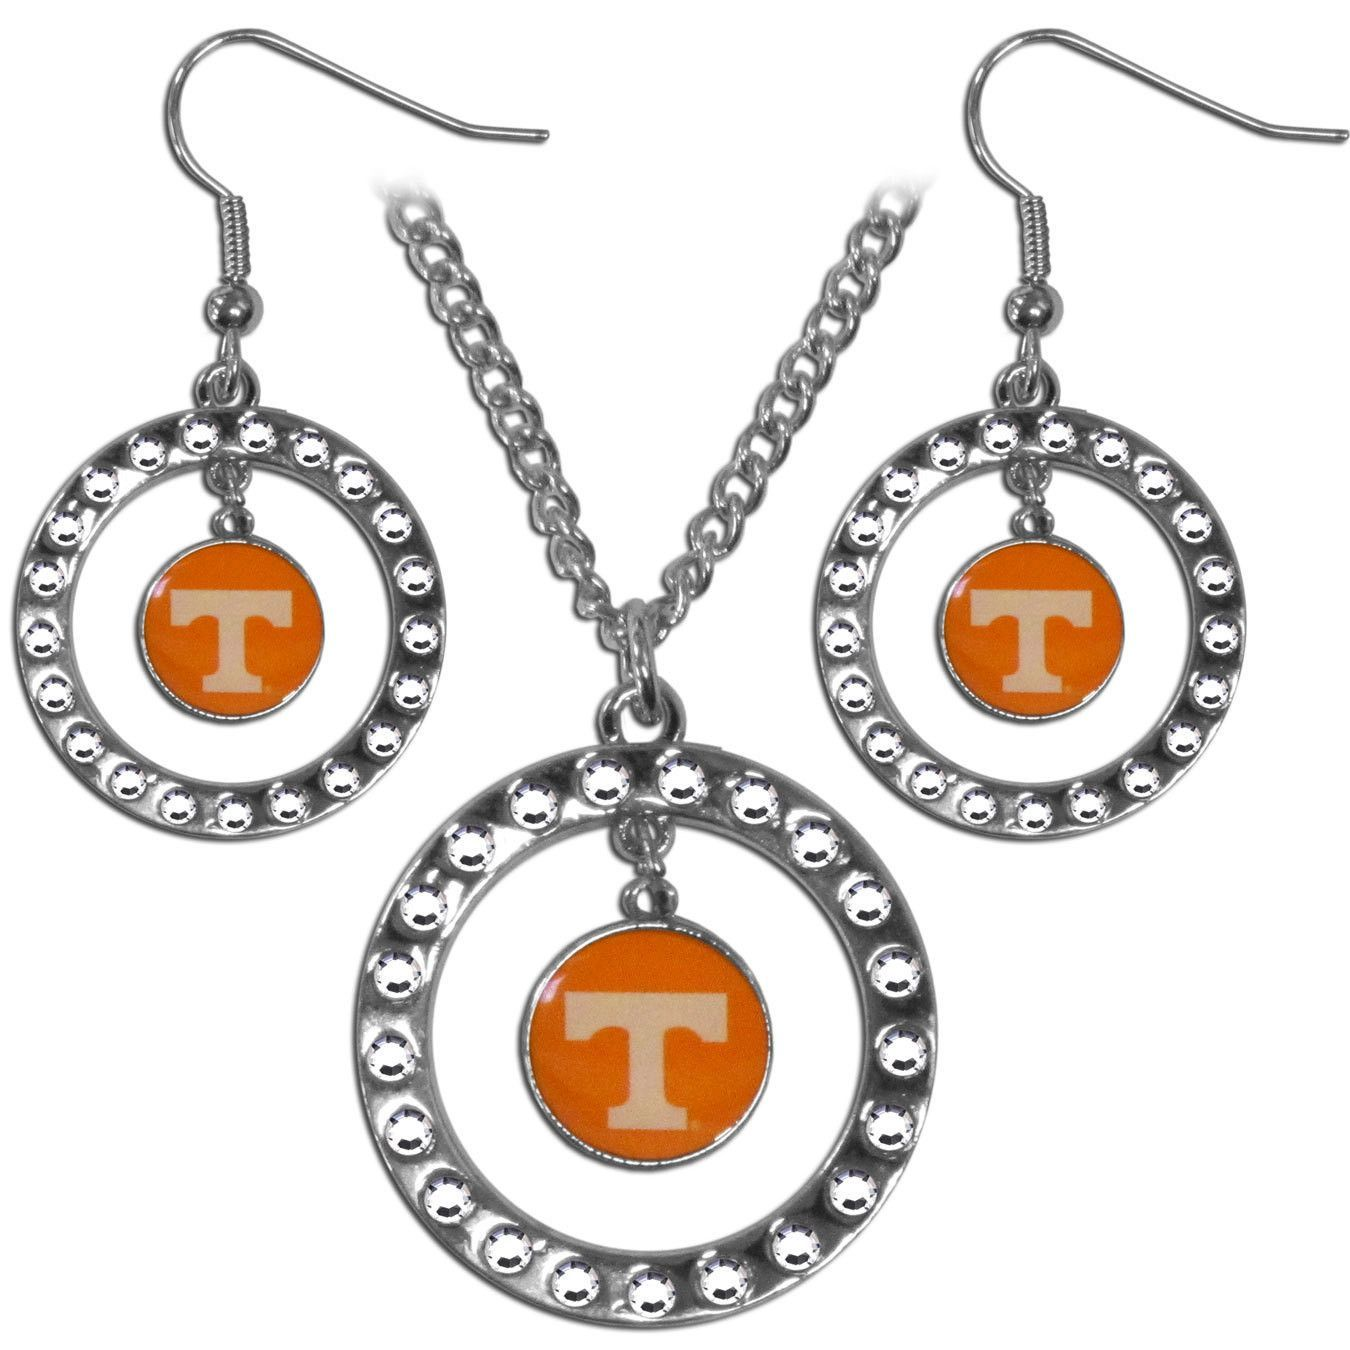 TENNESSEE RSTONE JWLRY SET